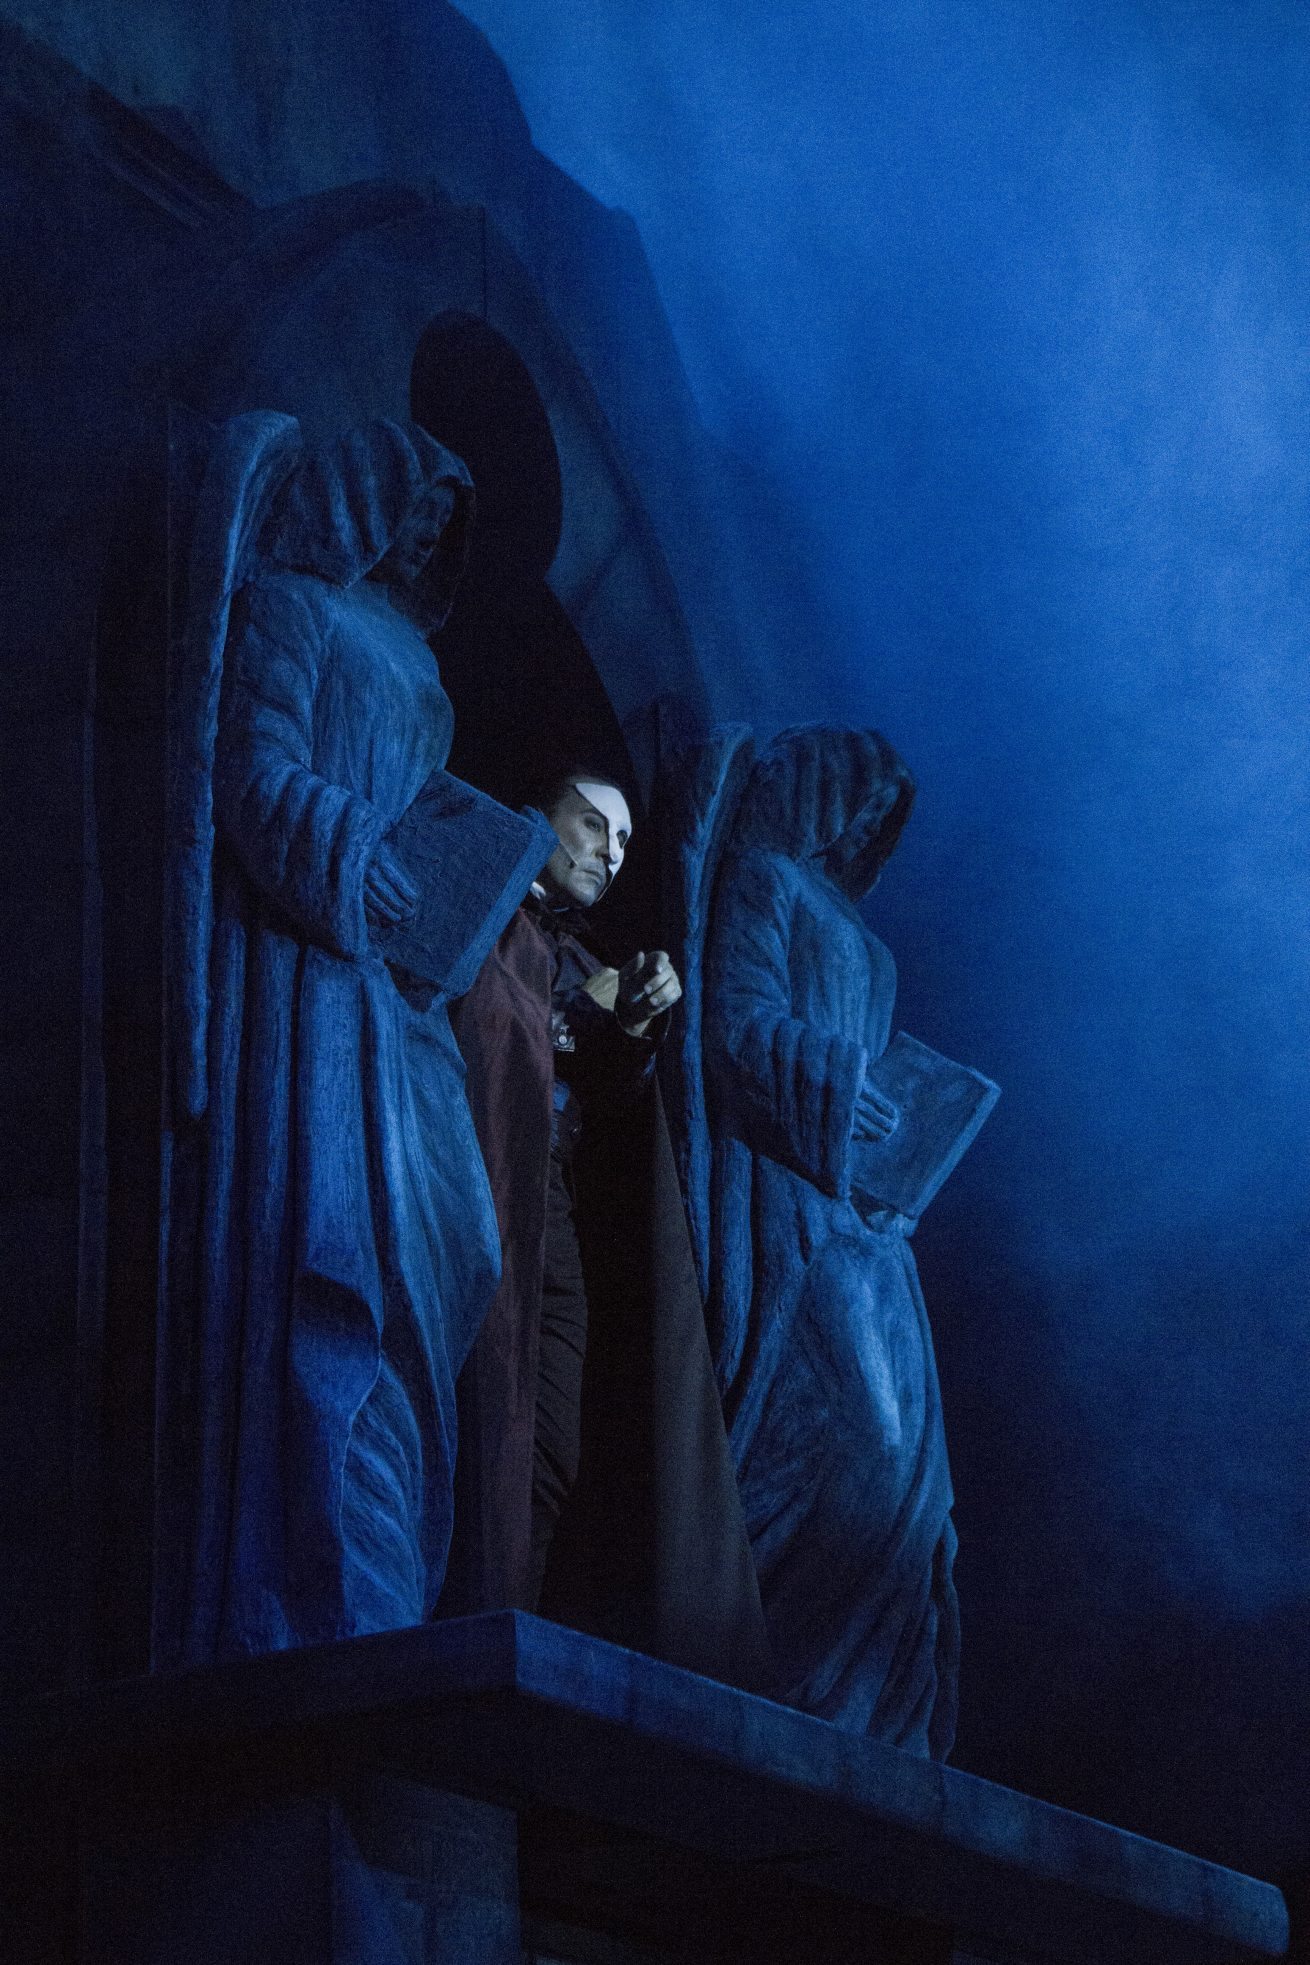 Phantom of the Opera, Estonia, 2014